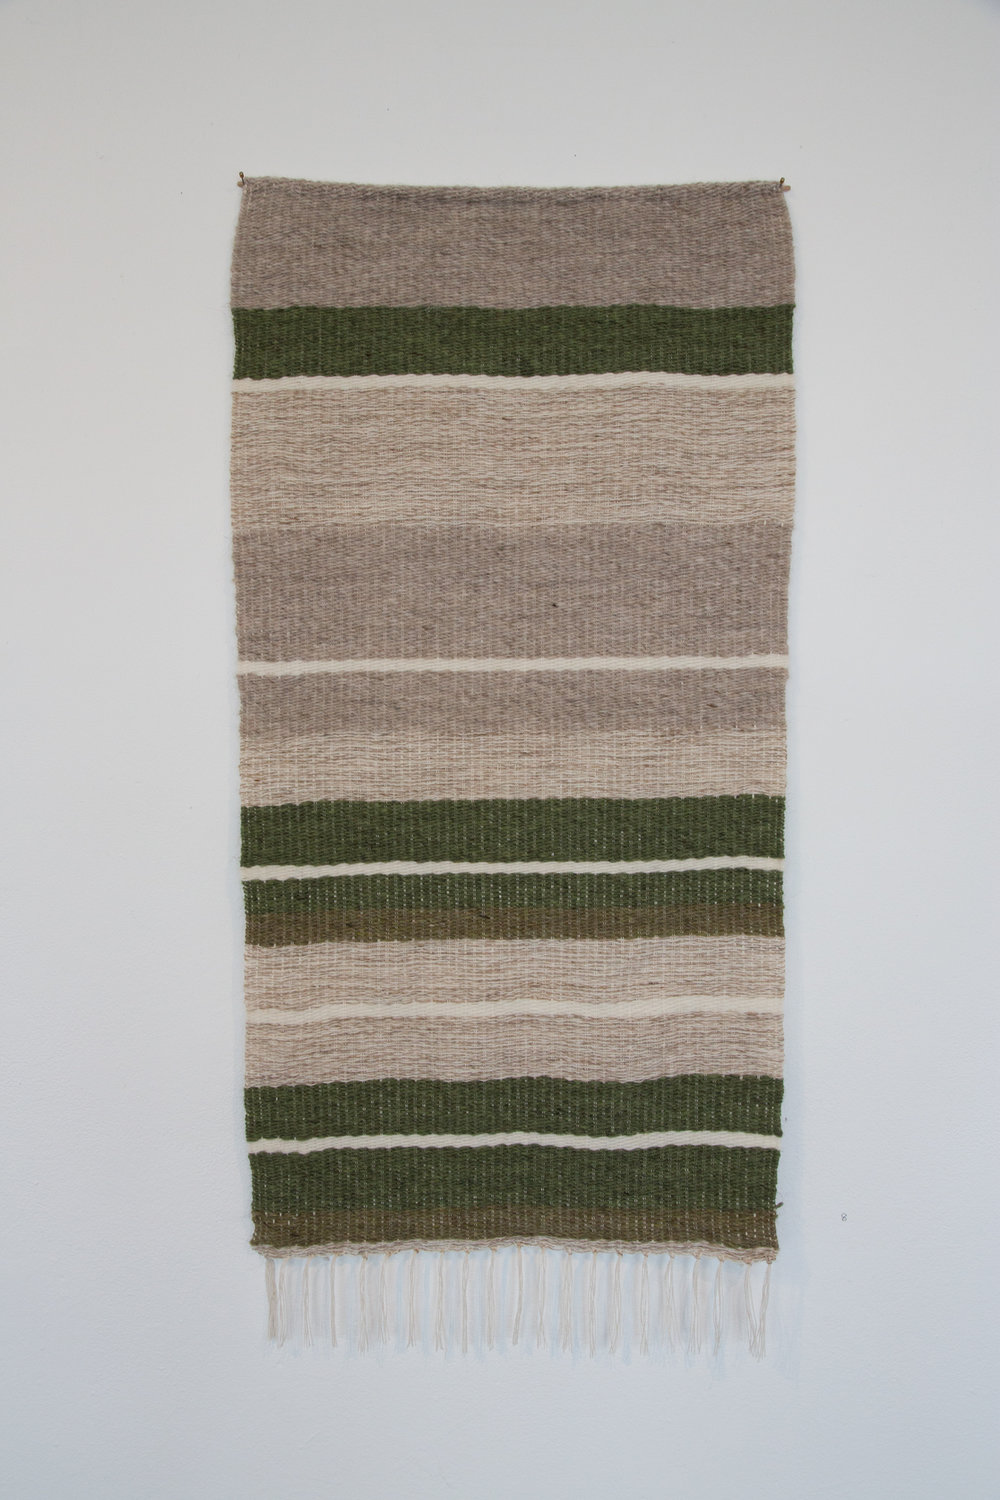 Vefa (After Halldora) 2  2016, hand-woven Icelandic wool.  Photograph by Yvonne Doherty at Cirrus Photography.